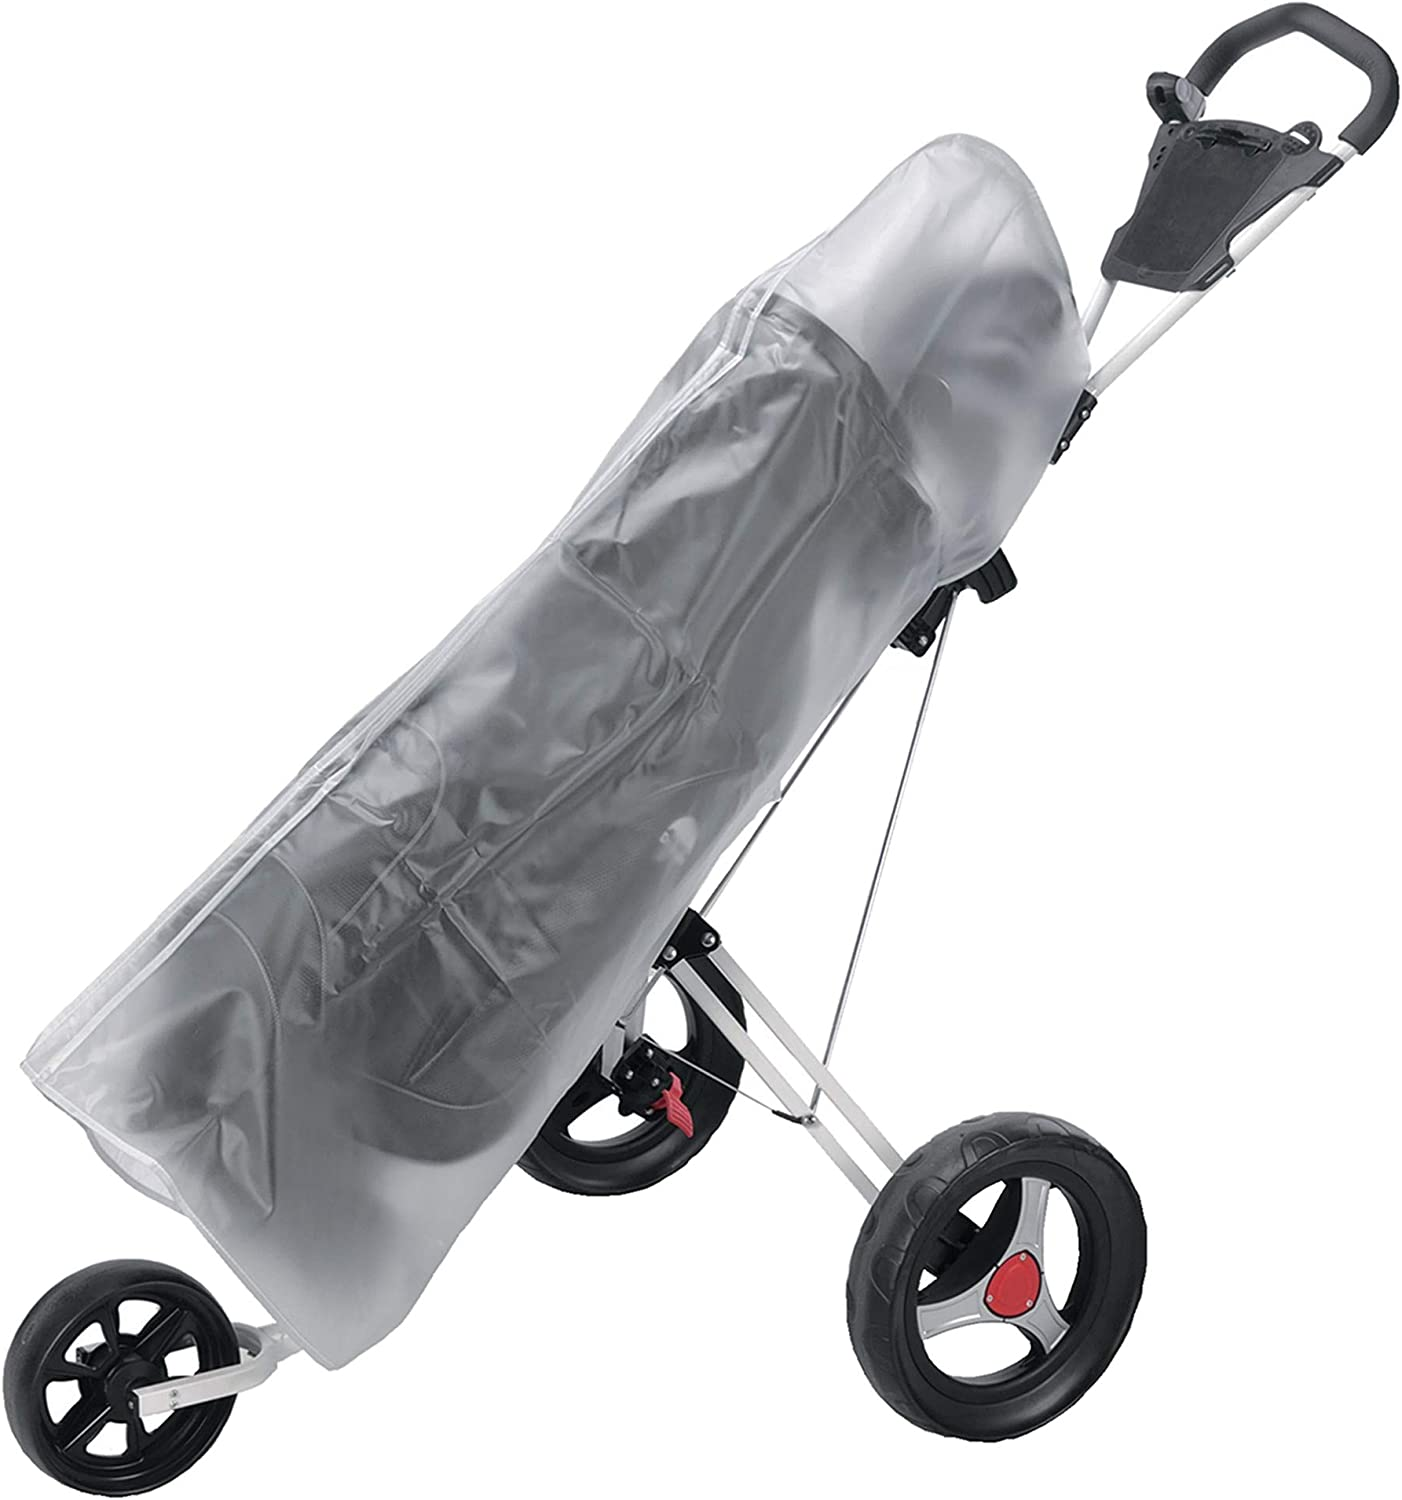 Adidat Waterproof PVC Rain Cover for Golf Bag & Cart